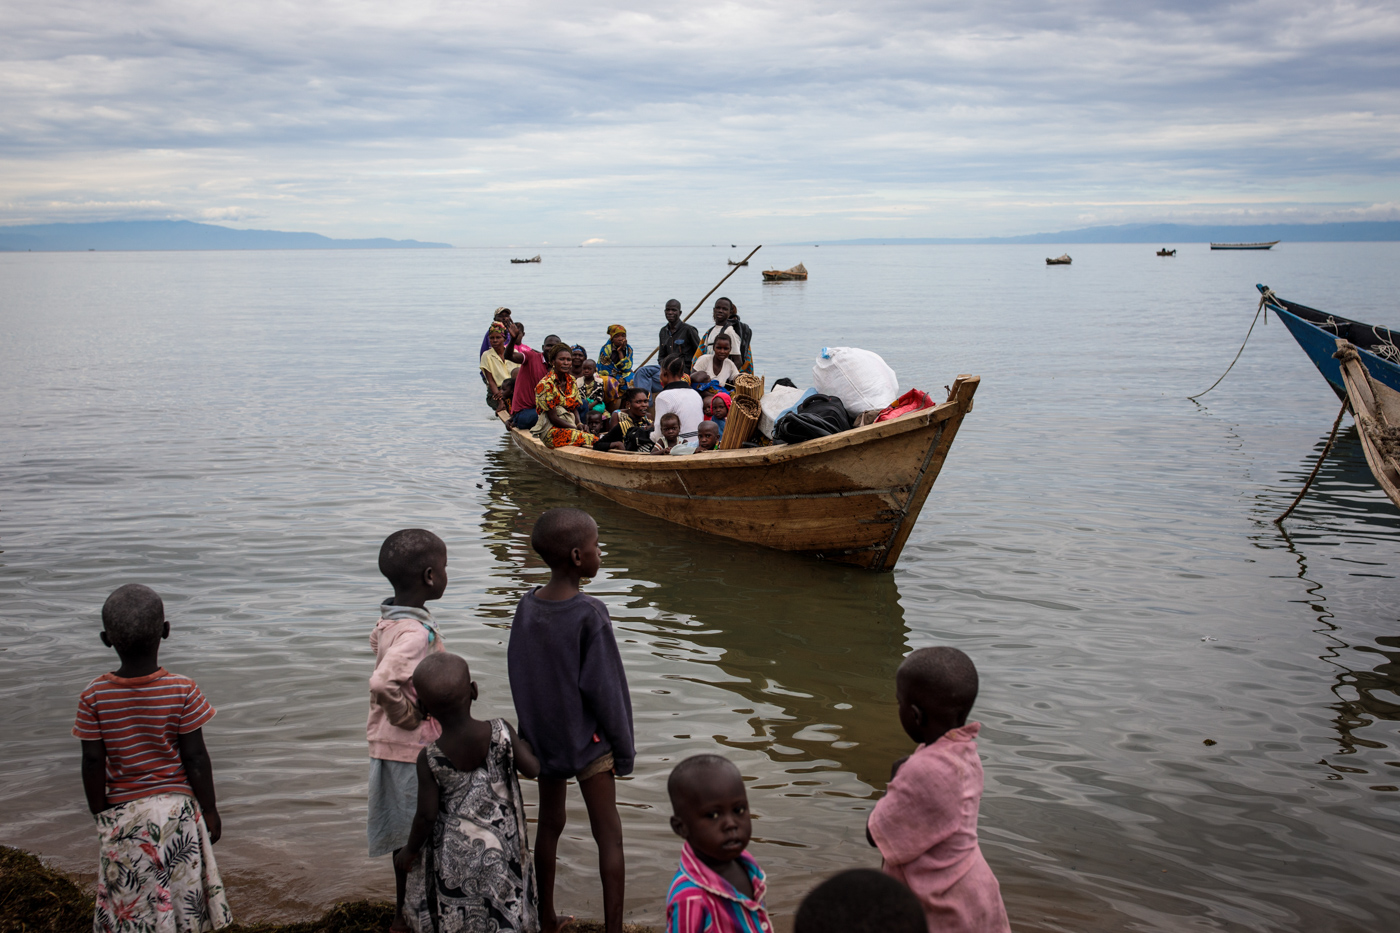 NSONGA, UGANDA: Refugees from Tchomia in the Democratic Republic of Congo arrive on boat at the Nsonga landing site on April 9, 2018.